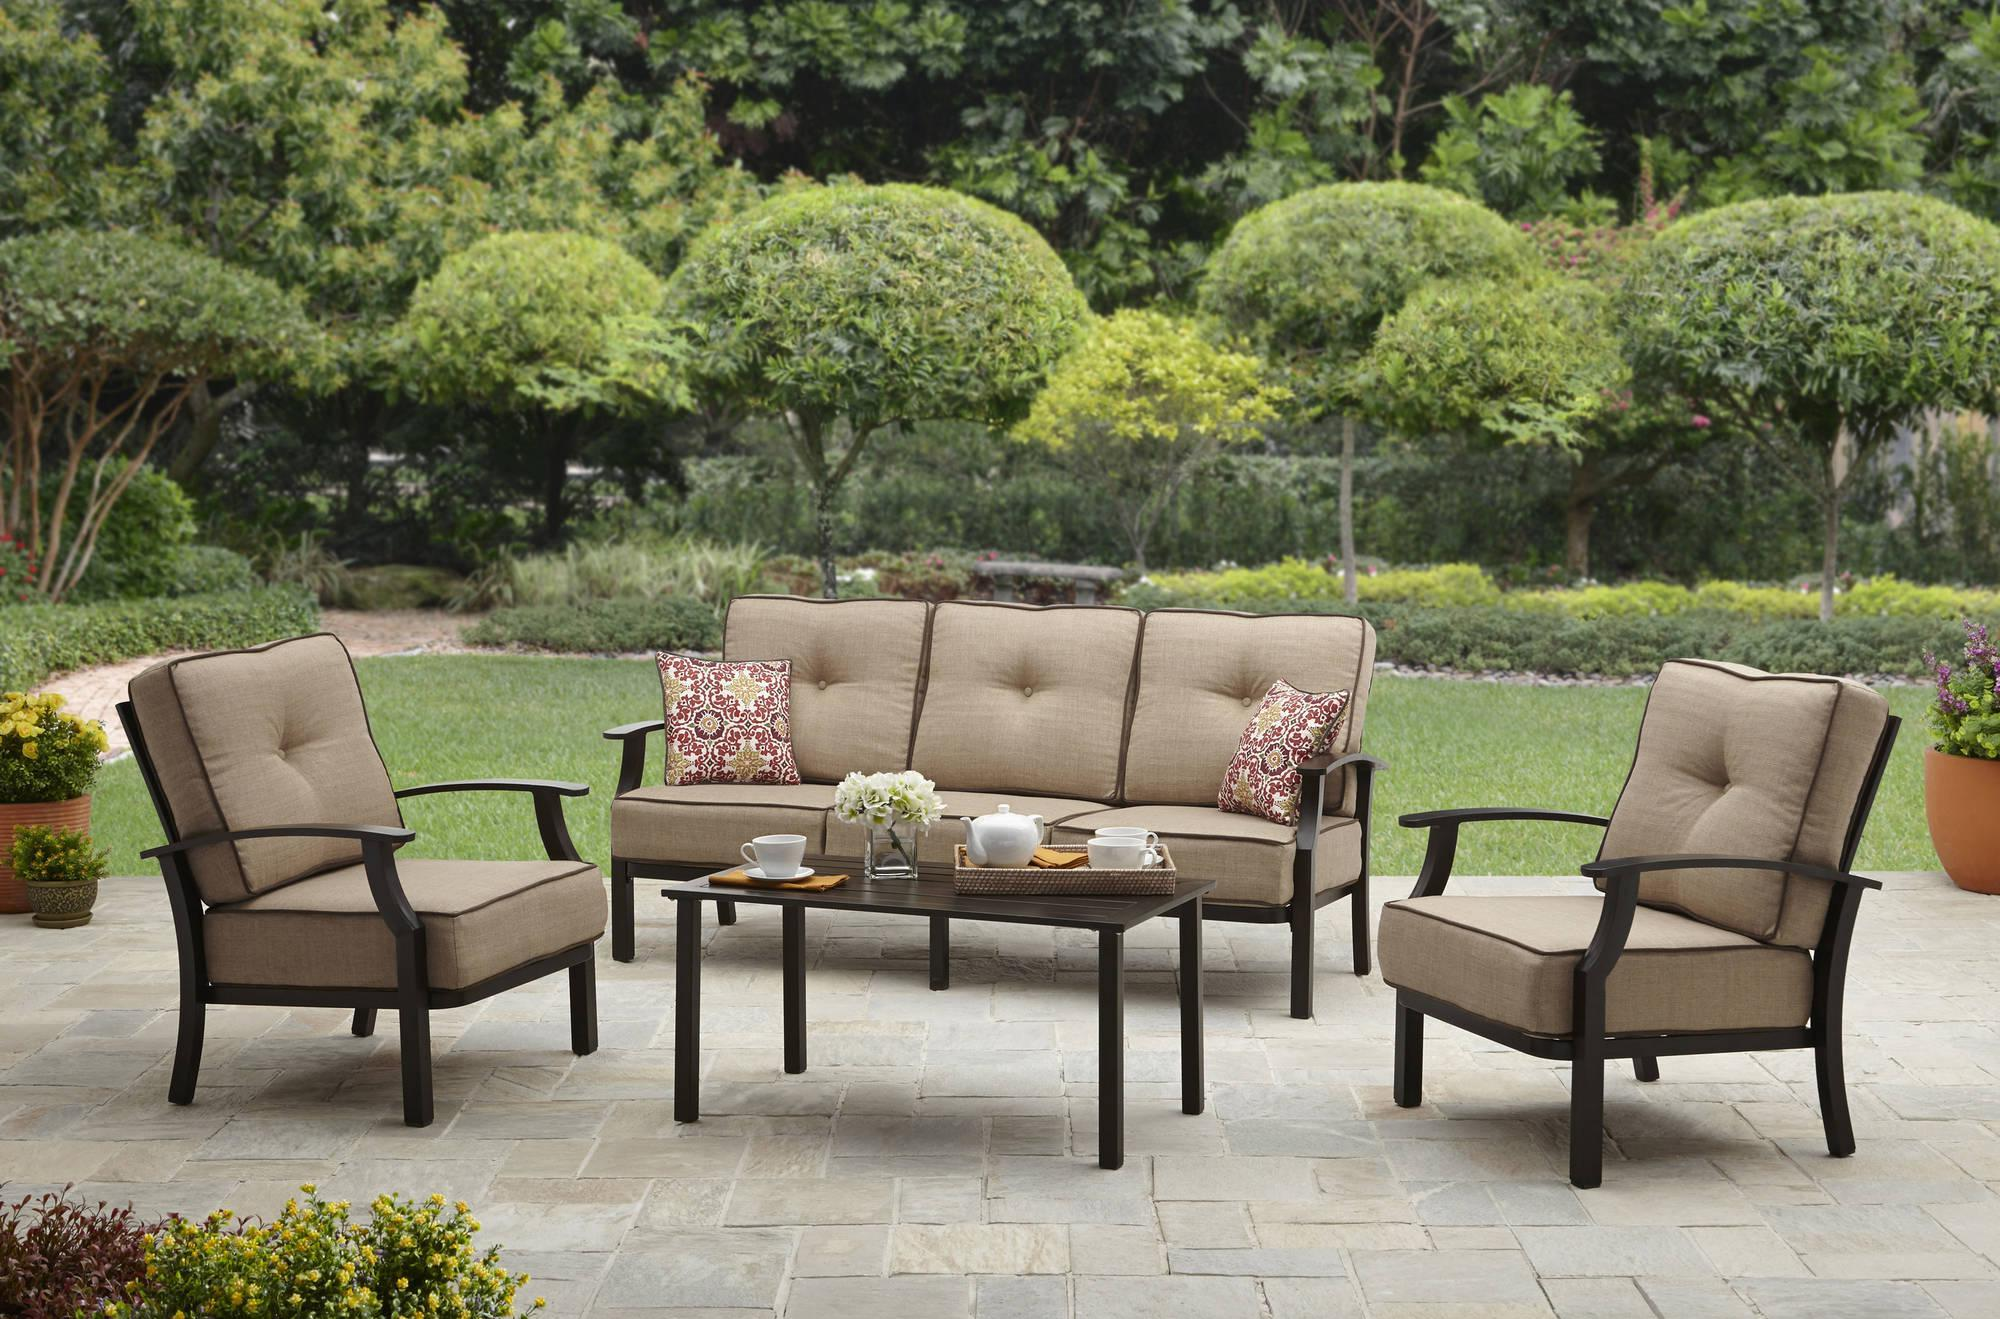 outdoor furniture for patio furnitures Backyard Outdoor Furniture id=51061